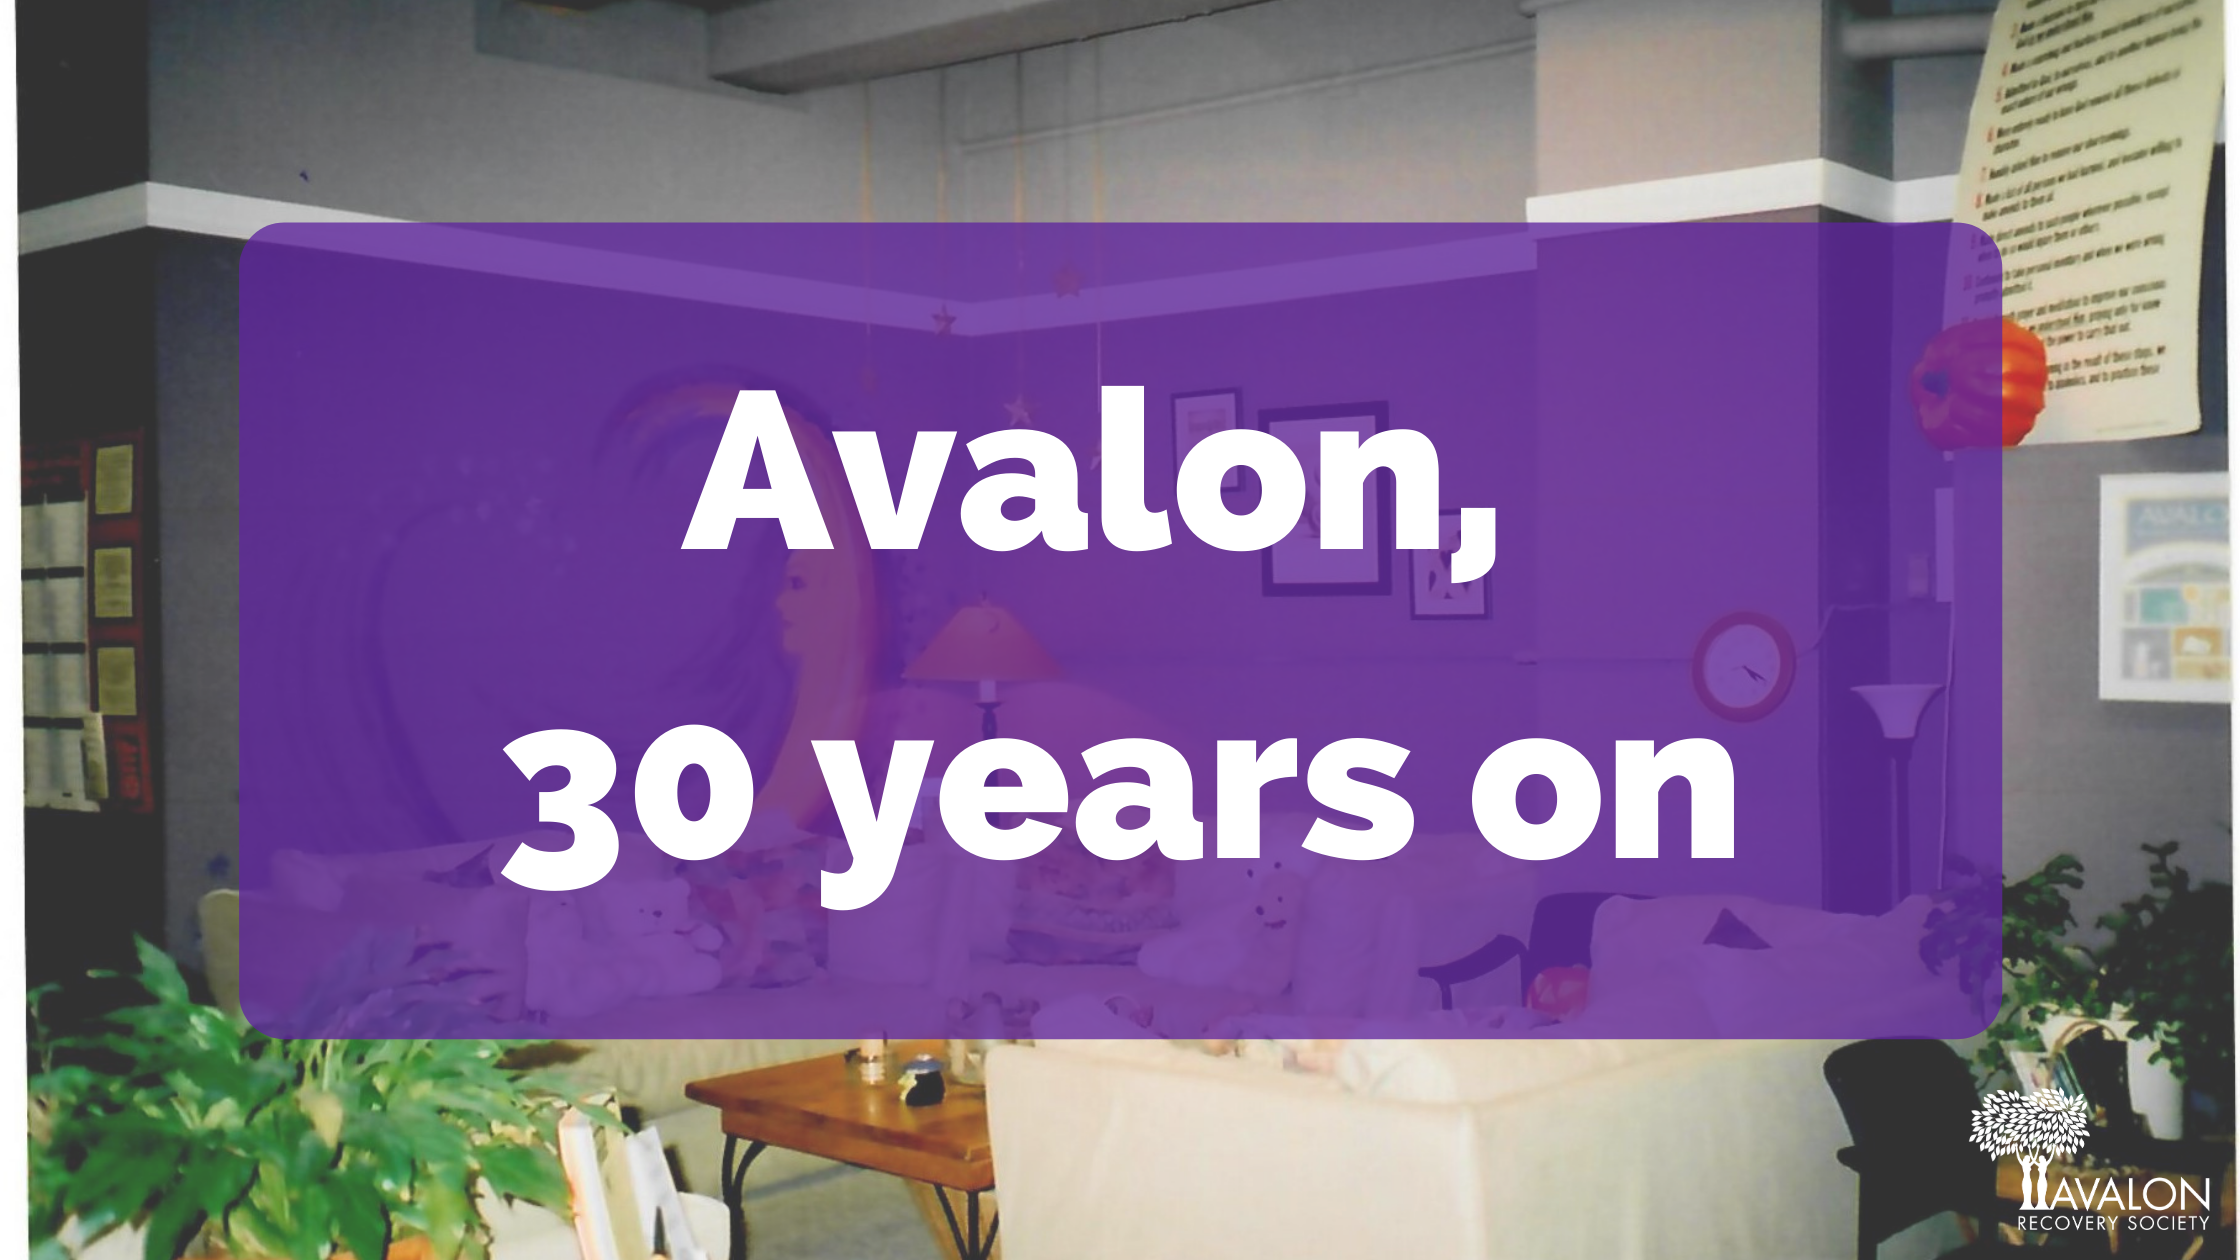 Avalon, 30 years on header